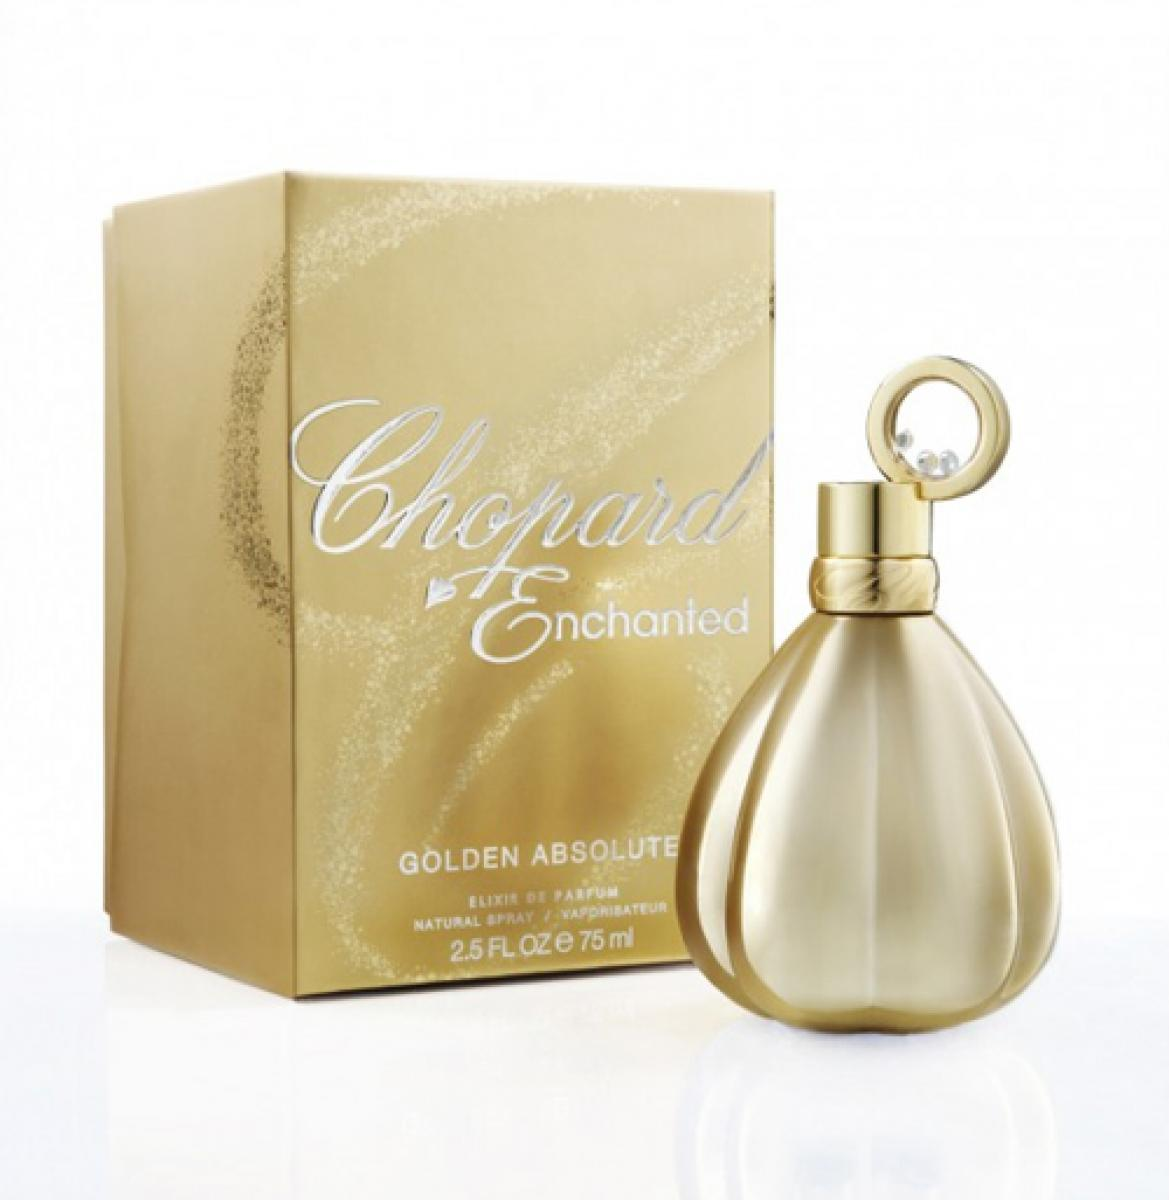 Парфюми  Chopard Enchanted Golden Absolute за жени